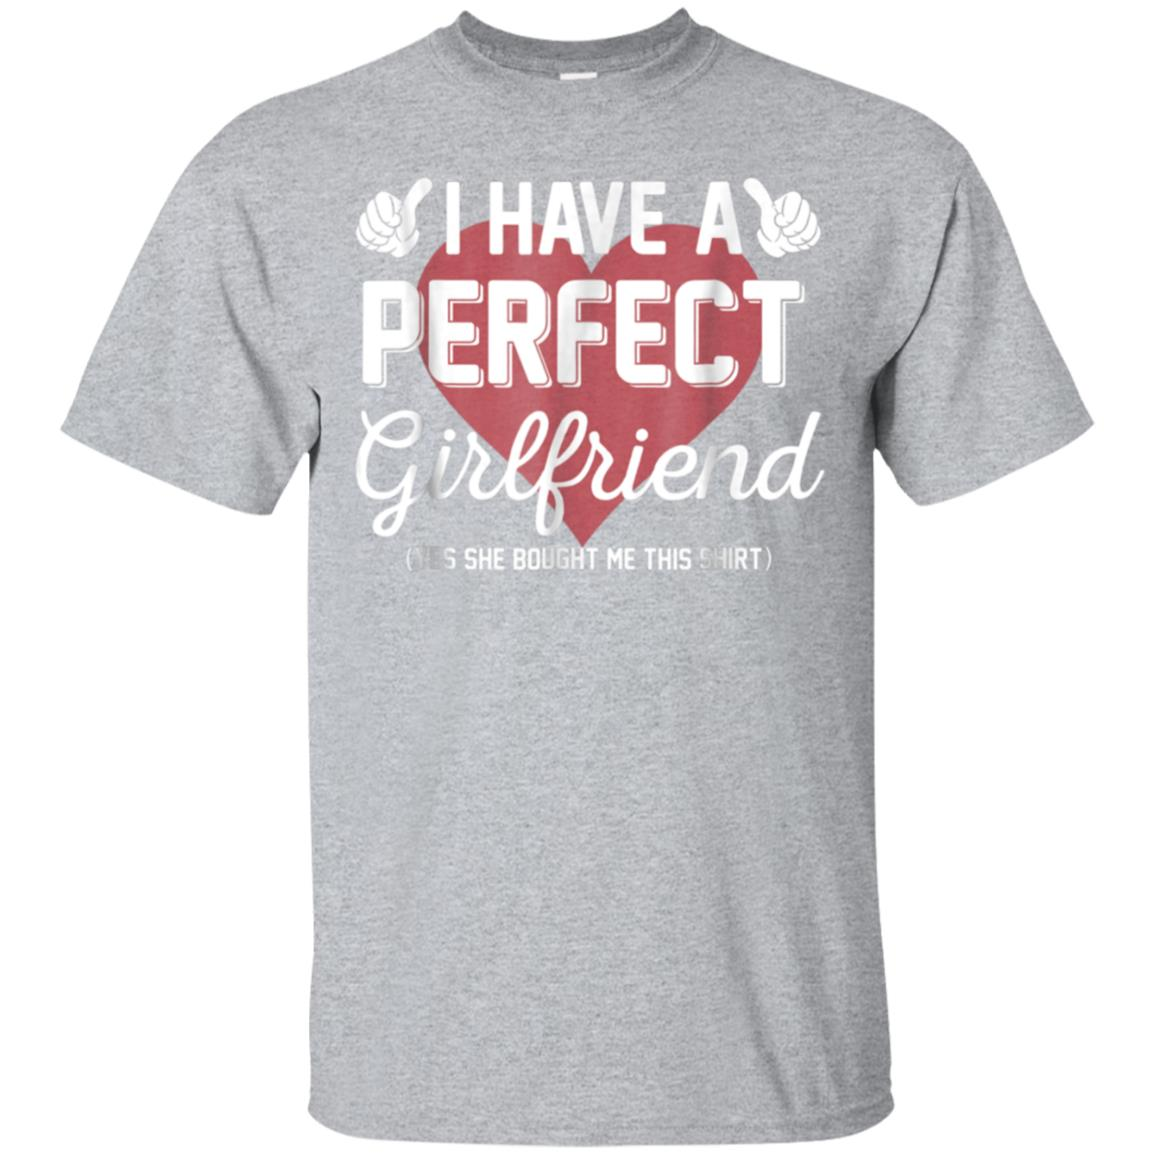 Perfect Girlfriend Shirts - Best Valentine Day Gifts For Him 99promocode